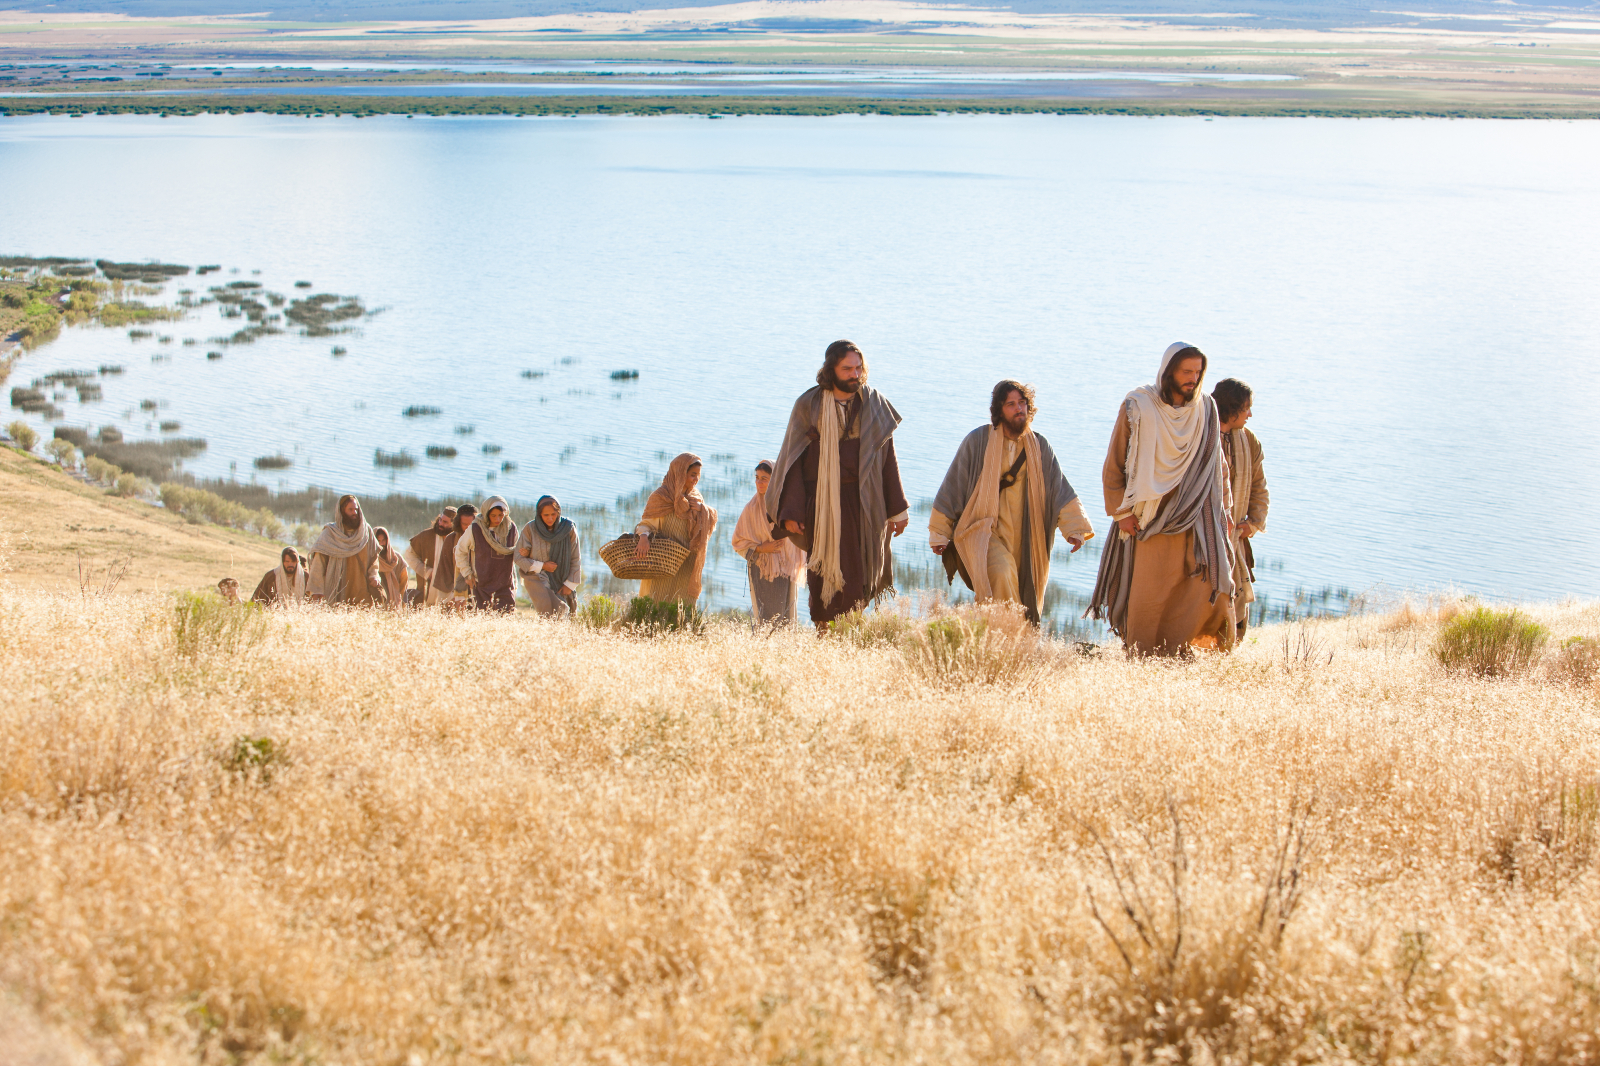 A scene from the Church's Bible videos depicts the Savior walking with men and women before He gave His Sermon on the Mount.